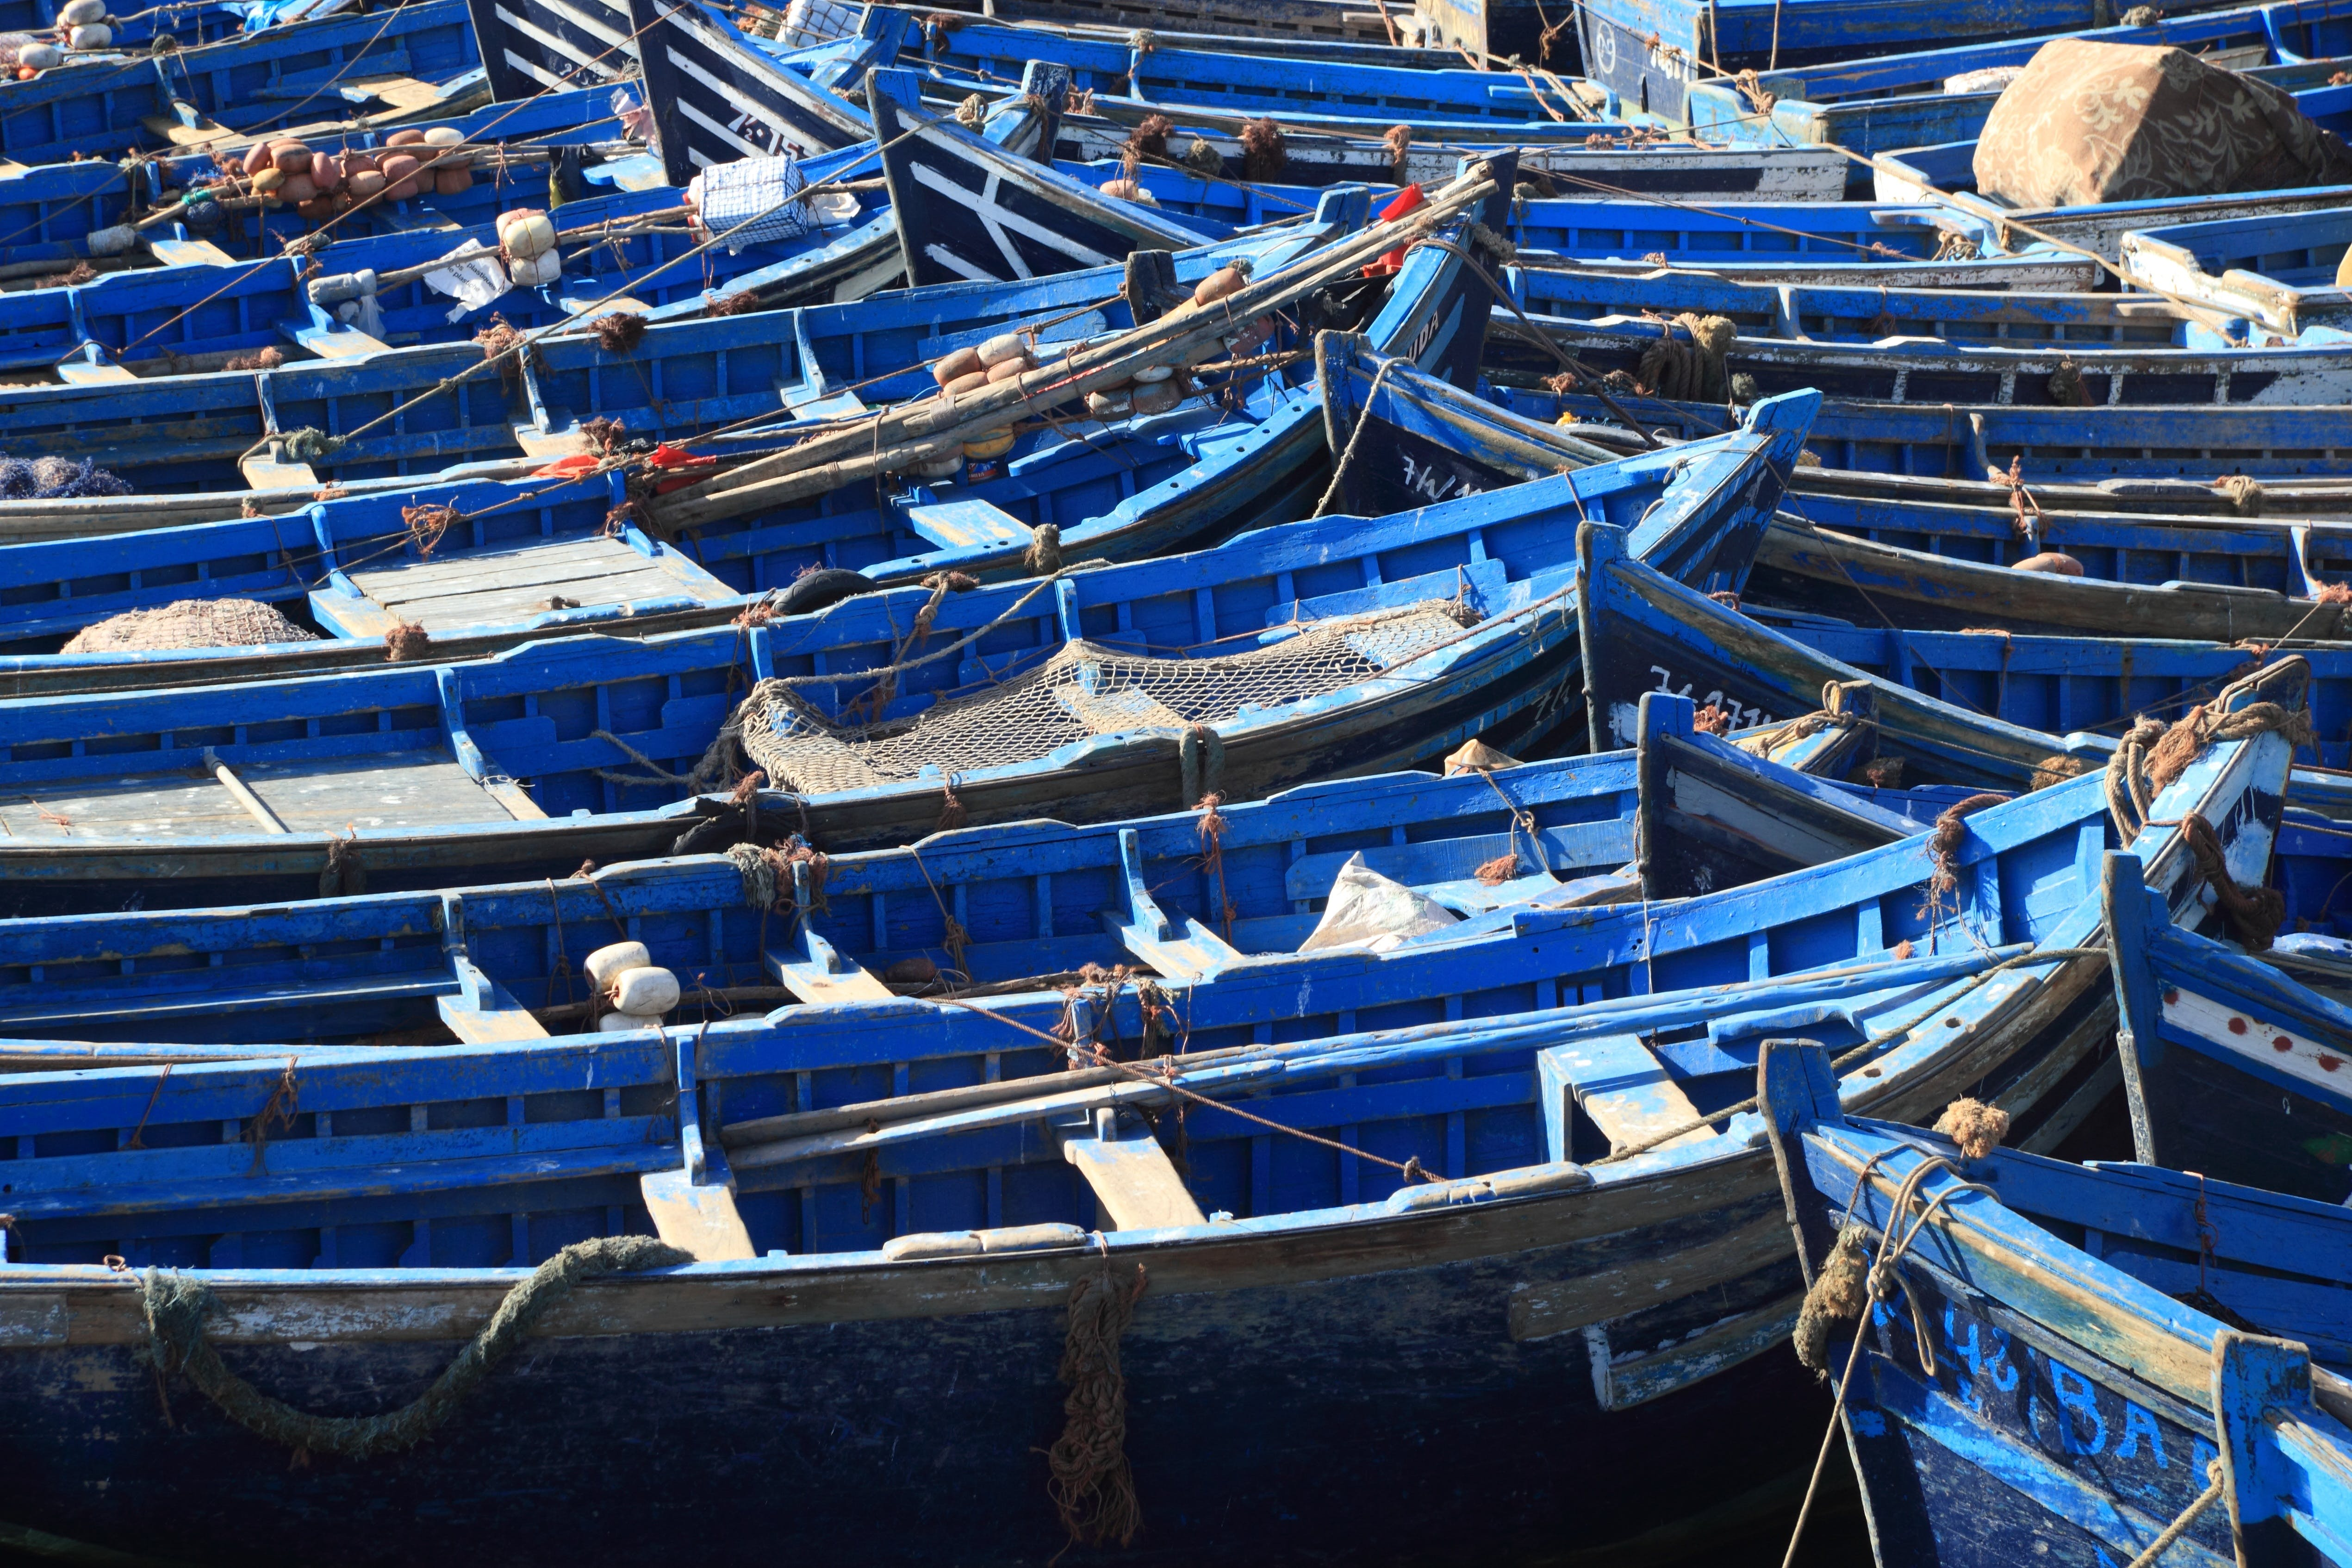 Free stock photo of fishing, boats, morocco, essaouira